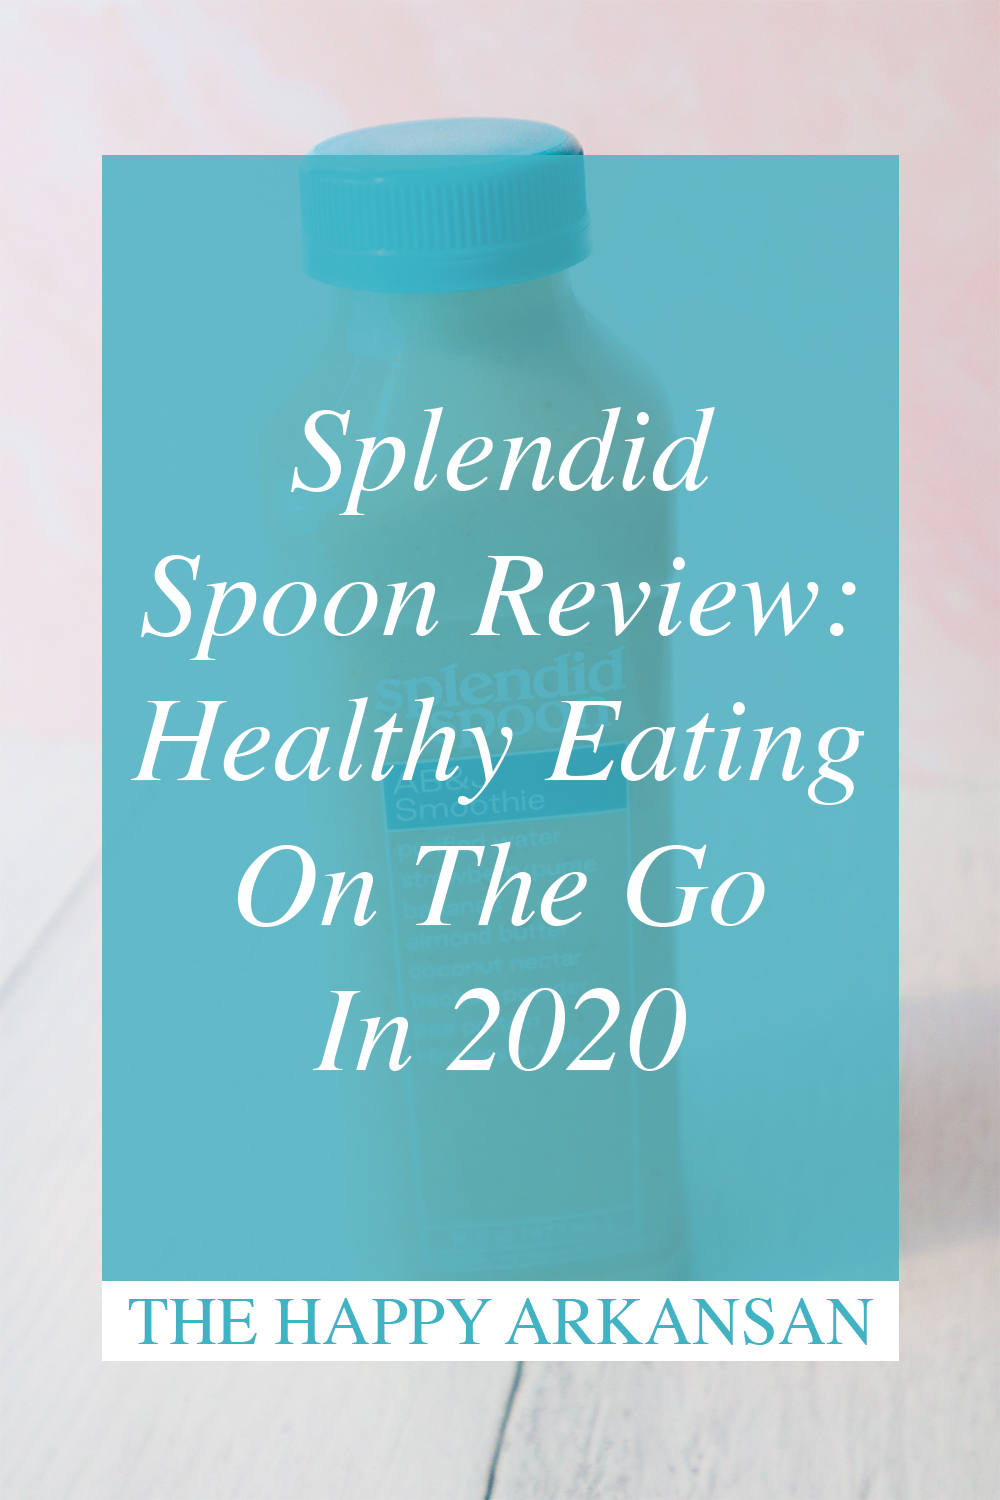 Splendid Spoon Review: Healthy Eating On The Go In 2020